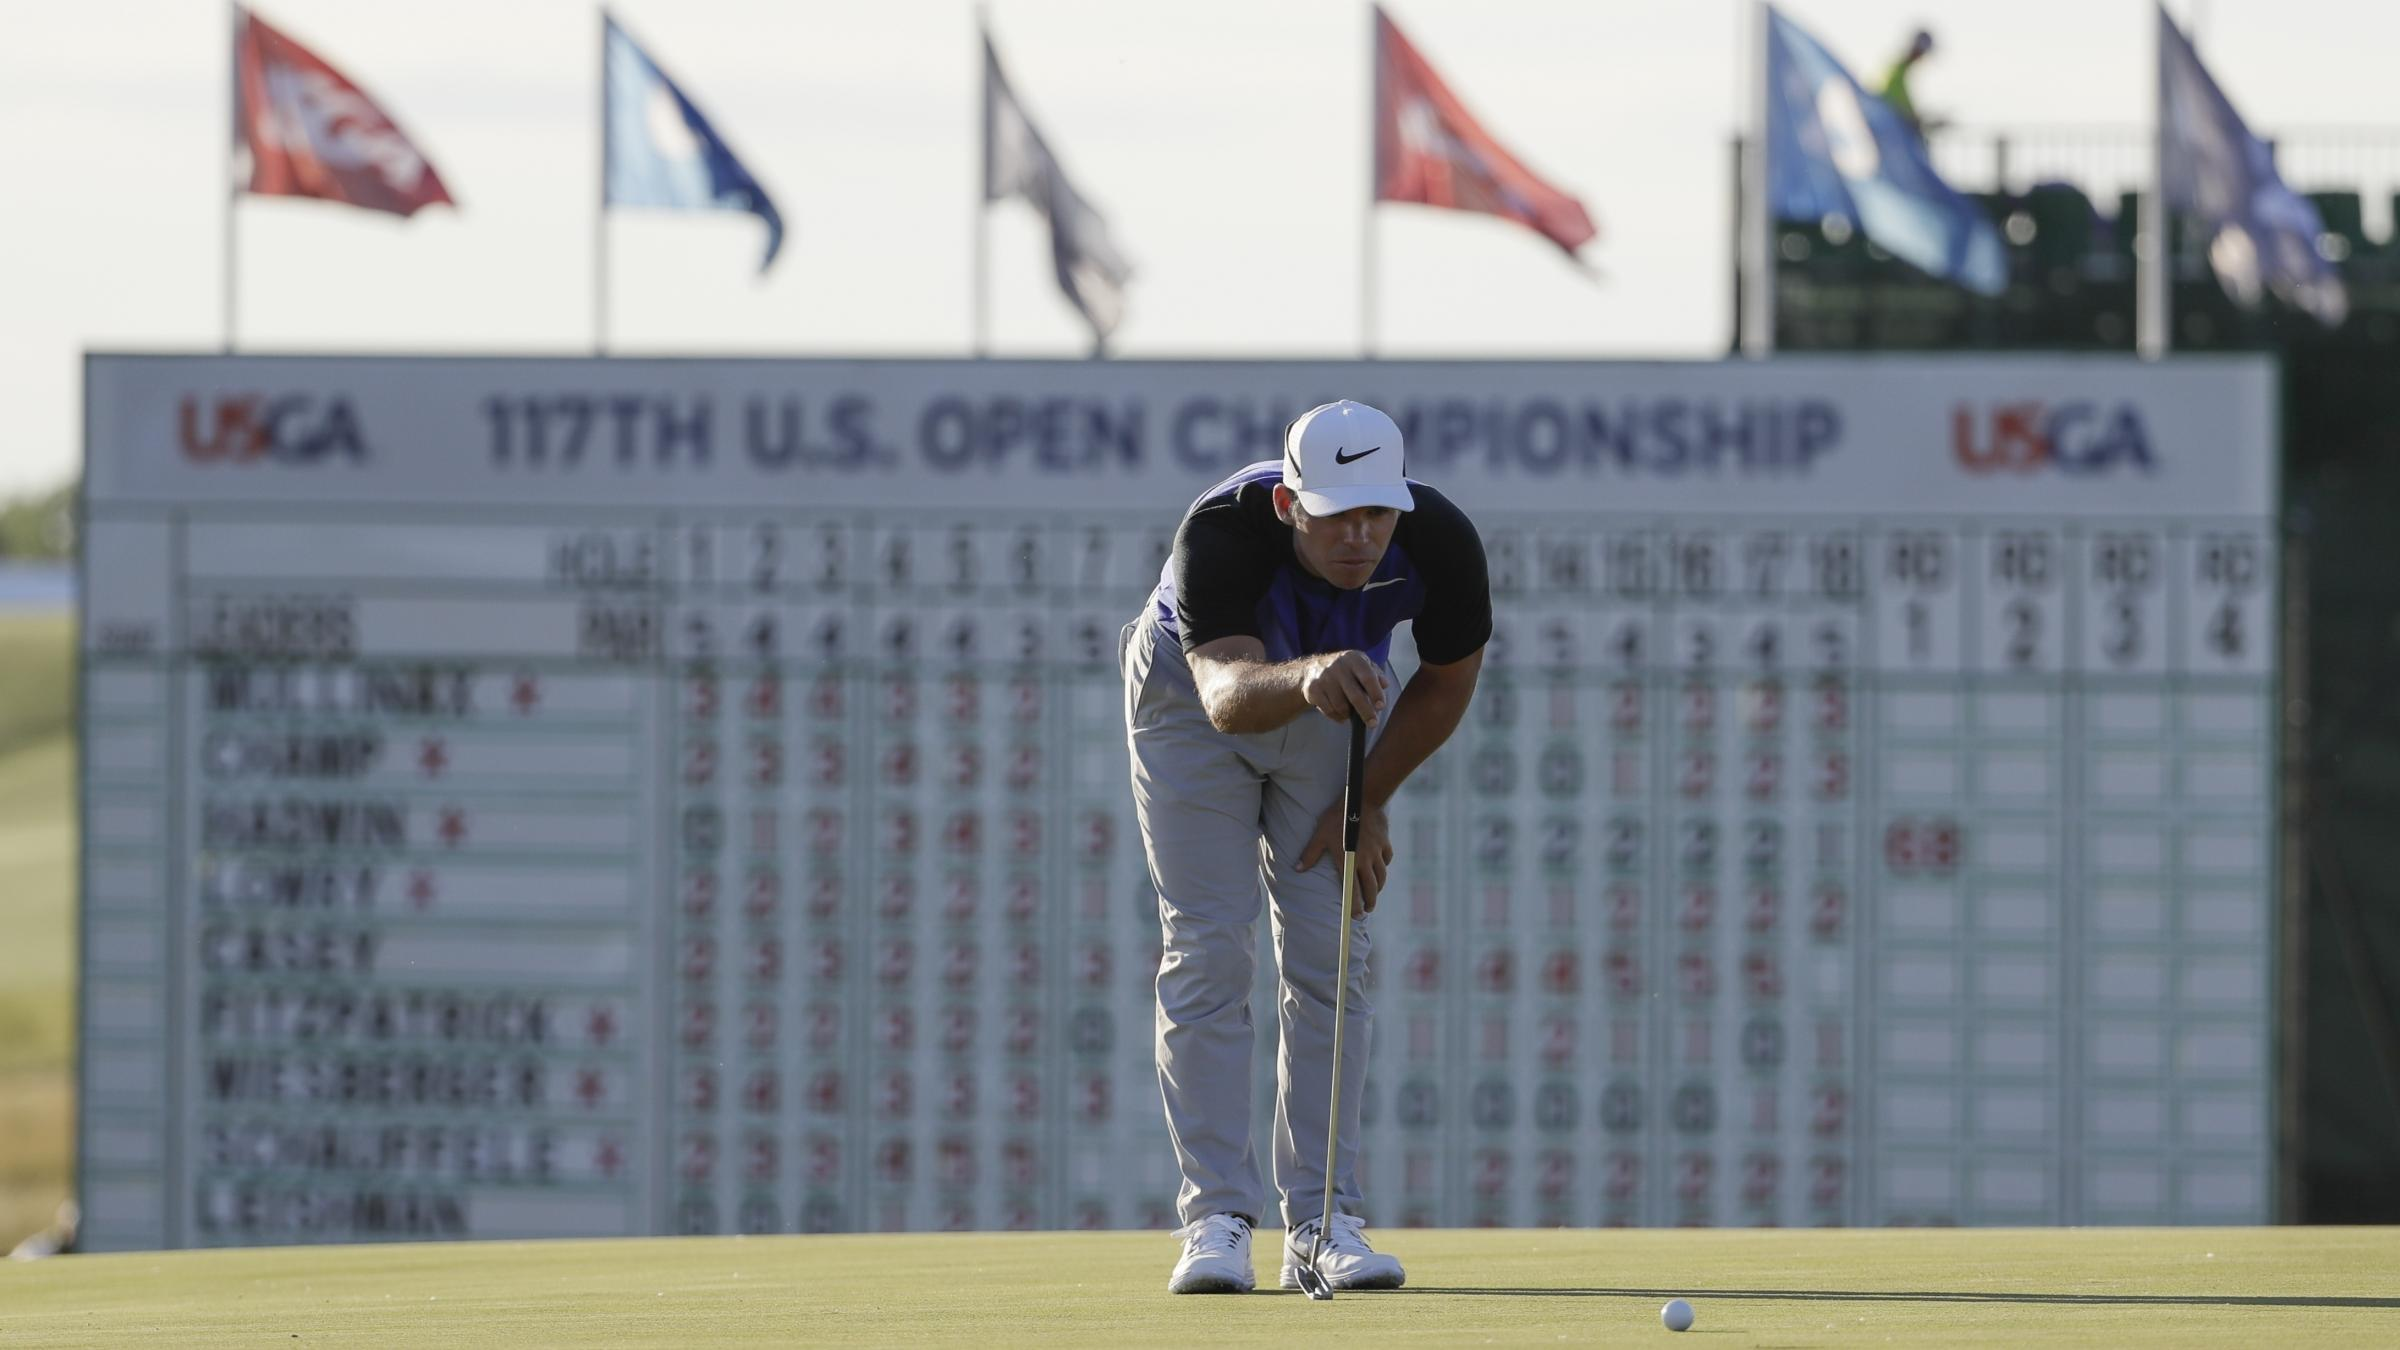 Record smashing Thomas grabs US Open lead